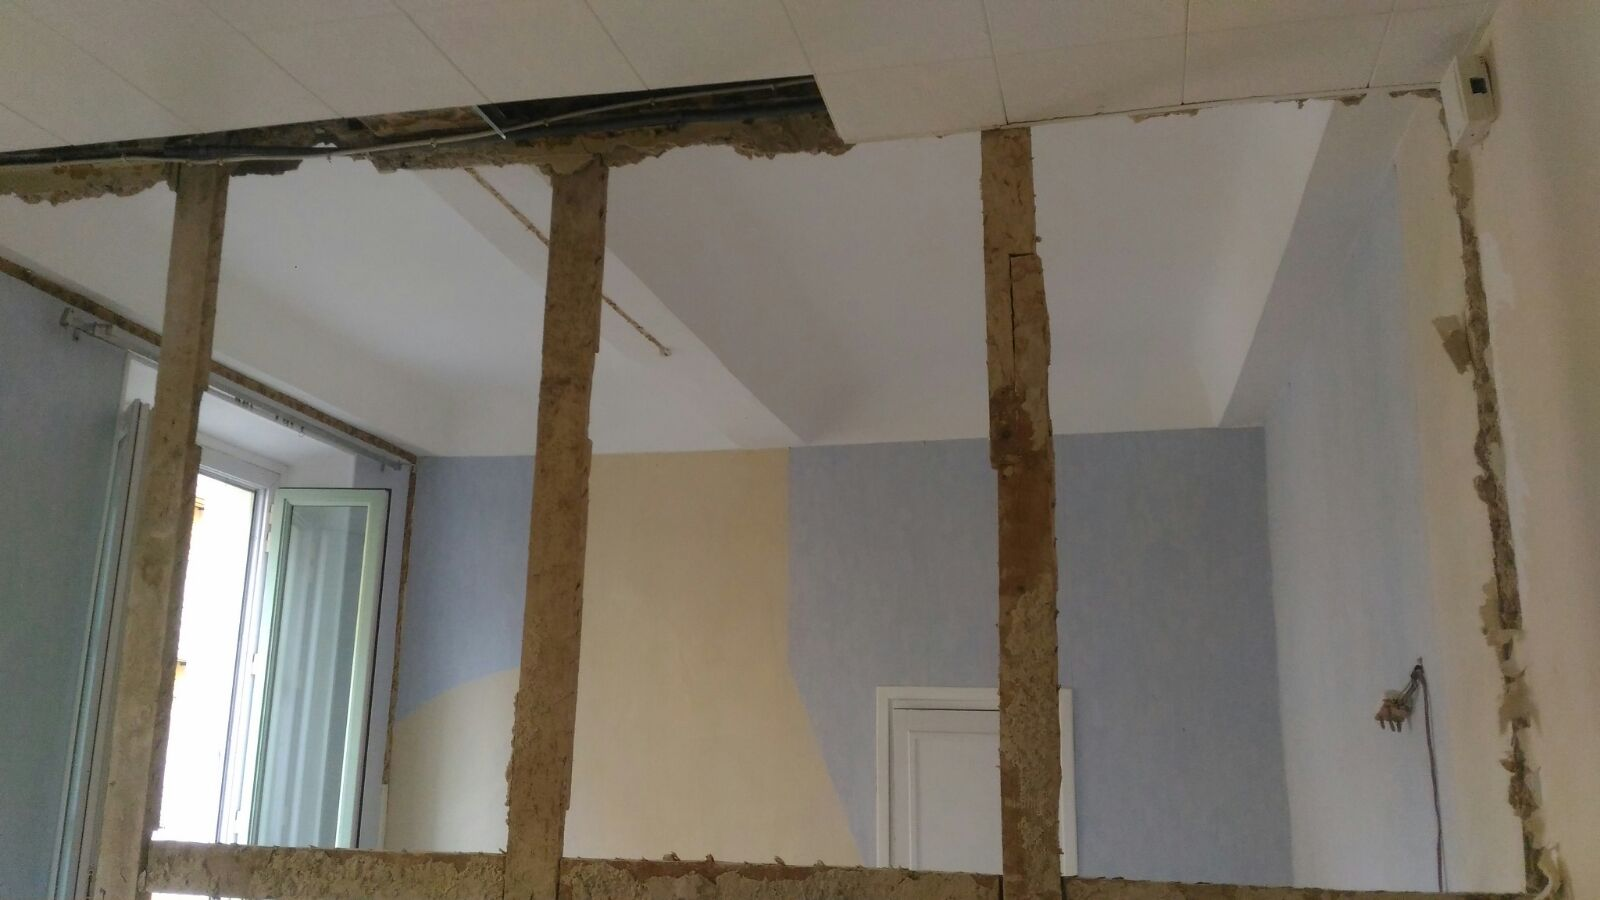 travaux de r233novation dun appartement 224 antibes 06